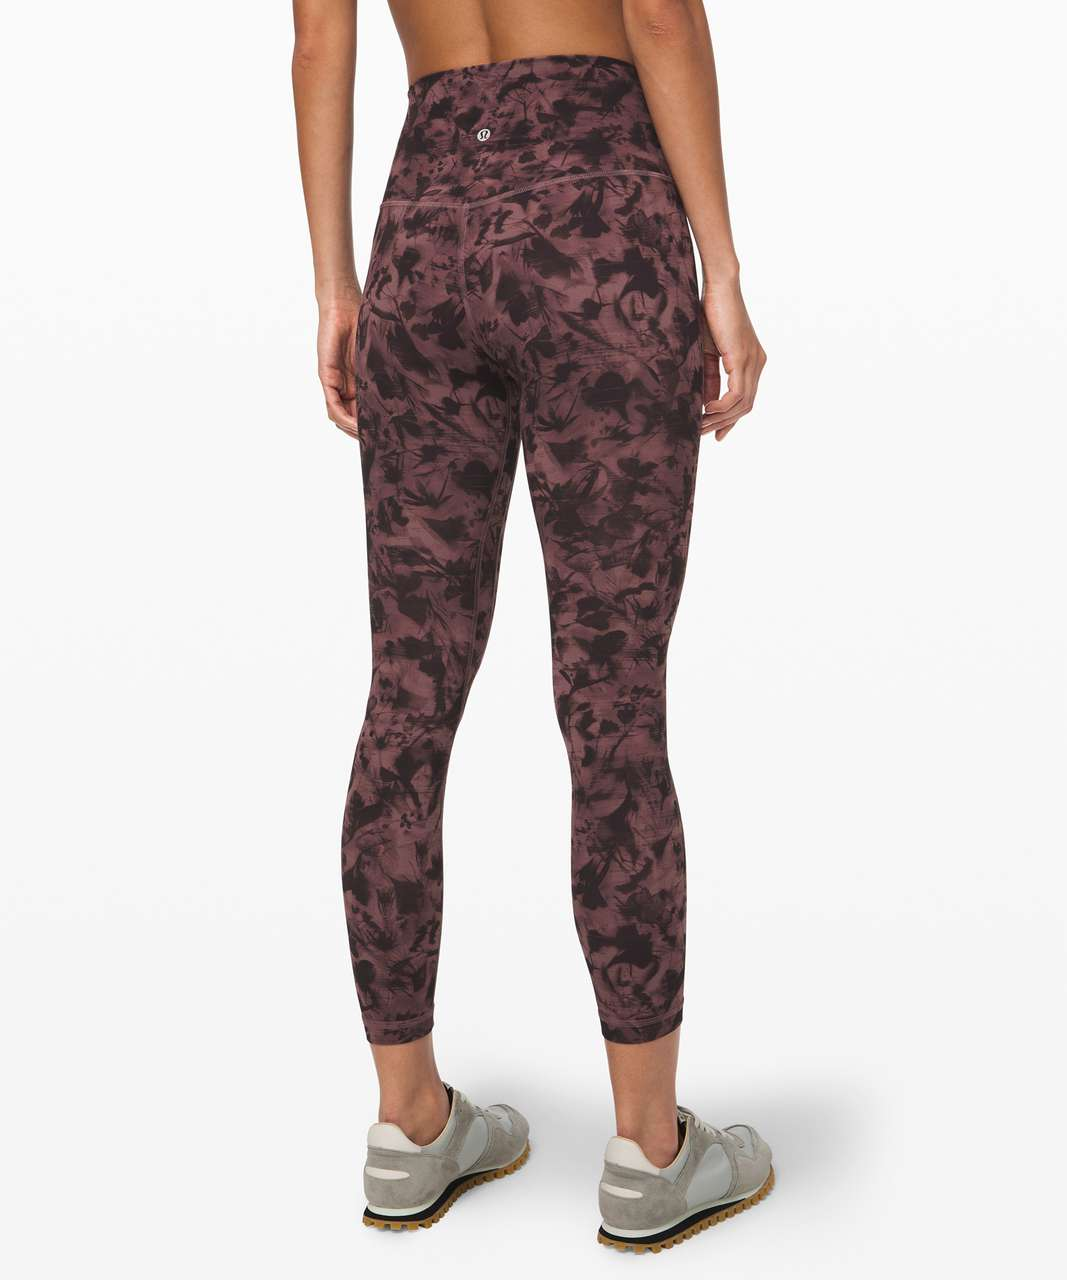 "Lululemon Align Pant II 25"" - Mini Dusk Floral Antique Bark Black"